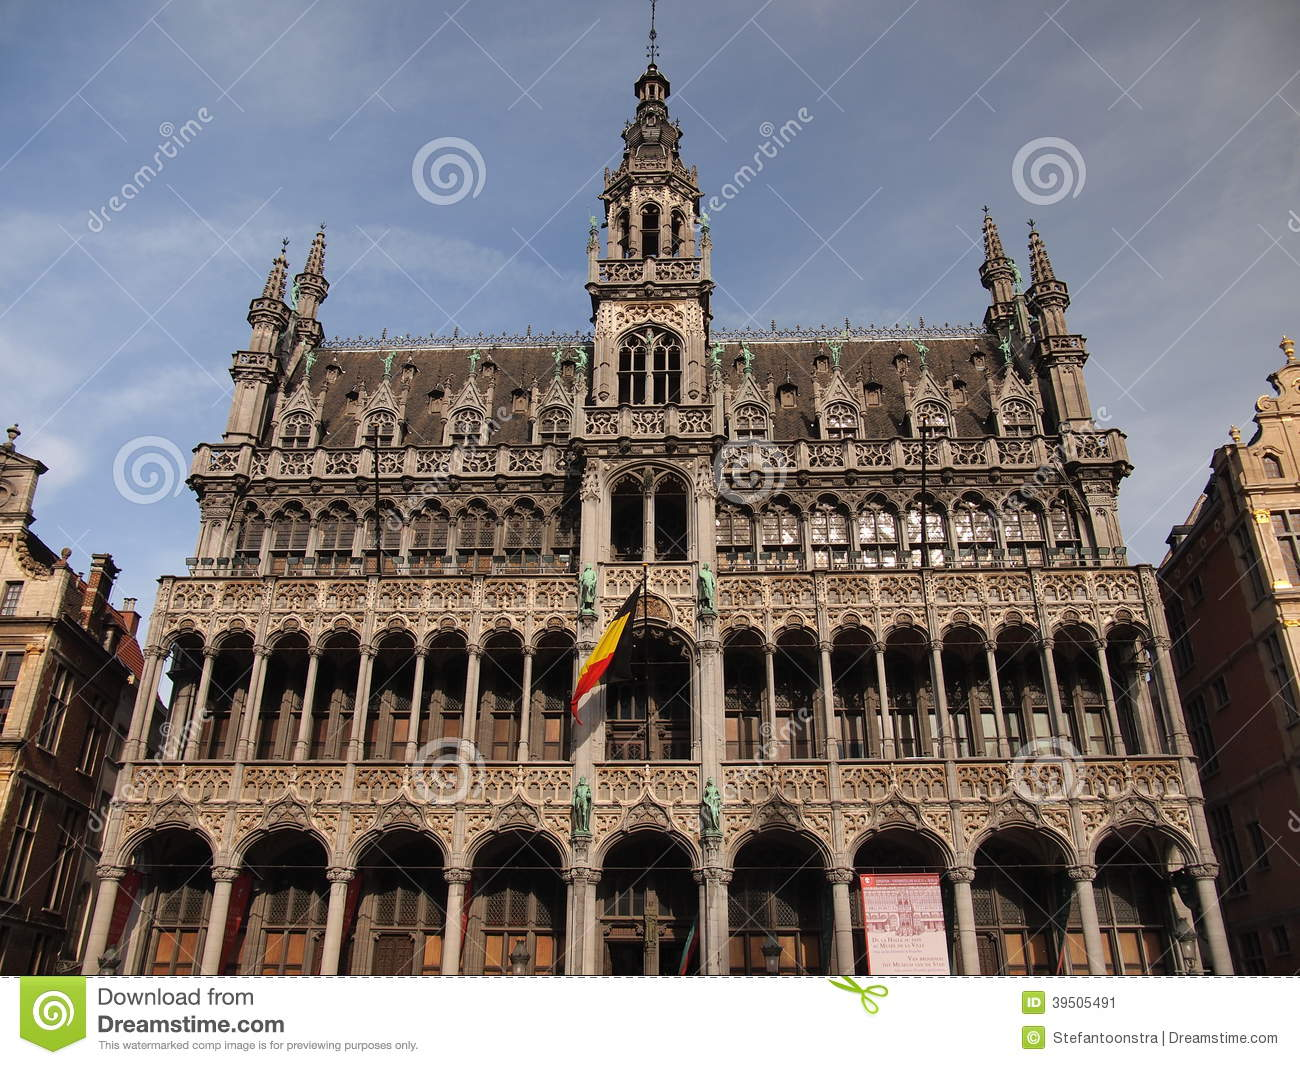 Grand Place (Brussels, Belgium)